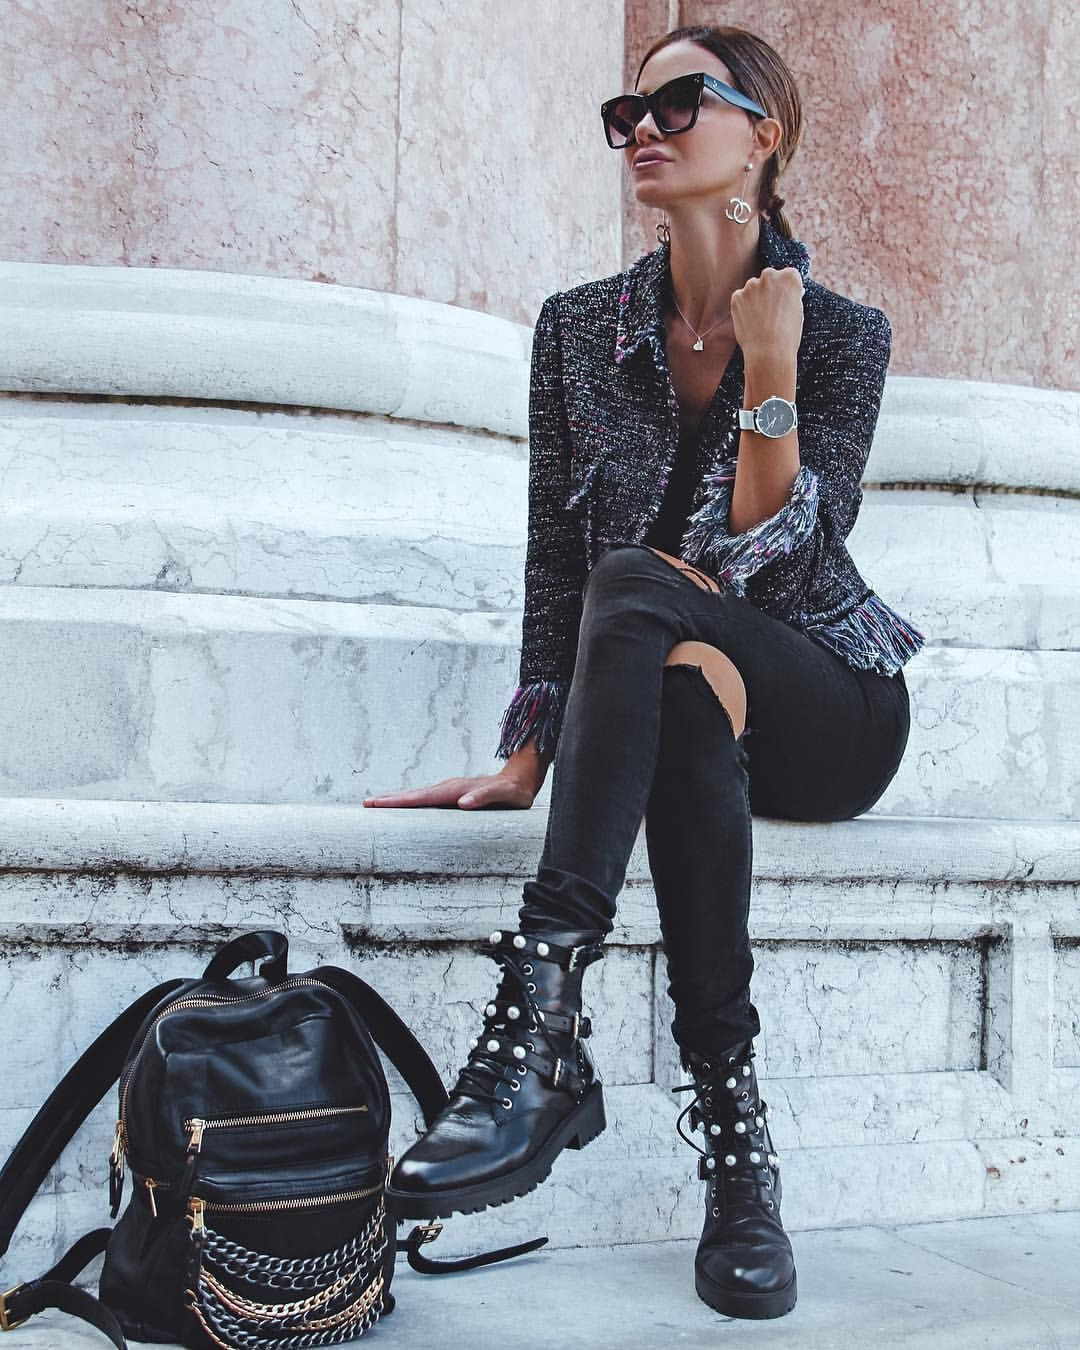 Colour outfit combat boots outfit, street fashion, combat boot